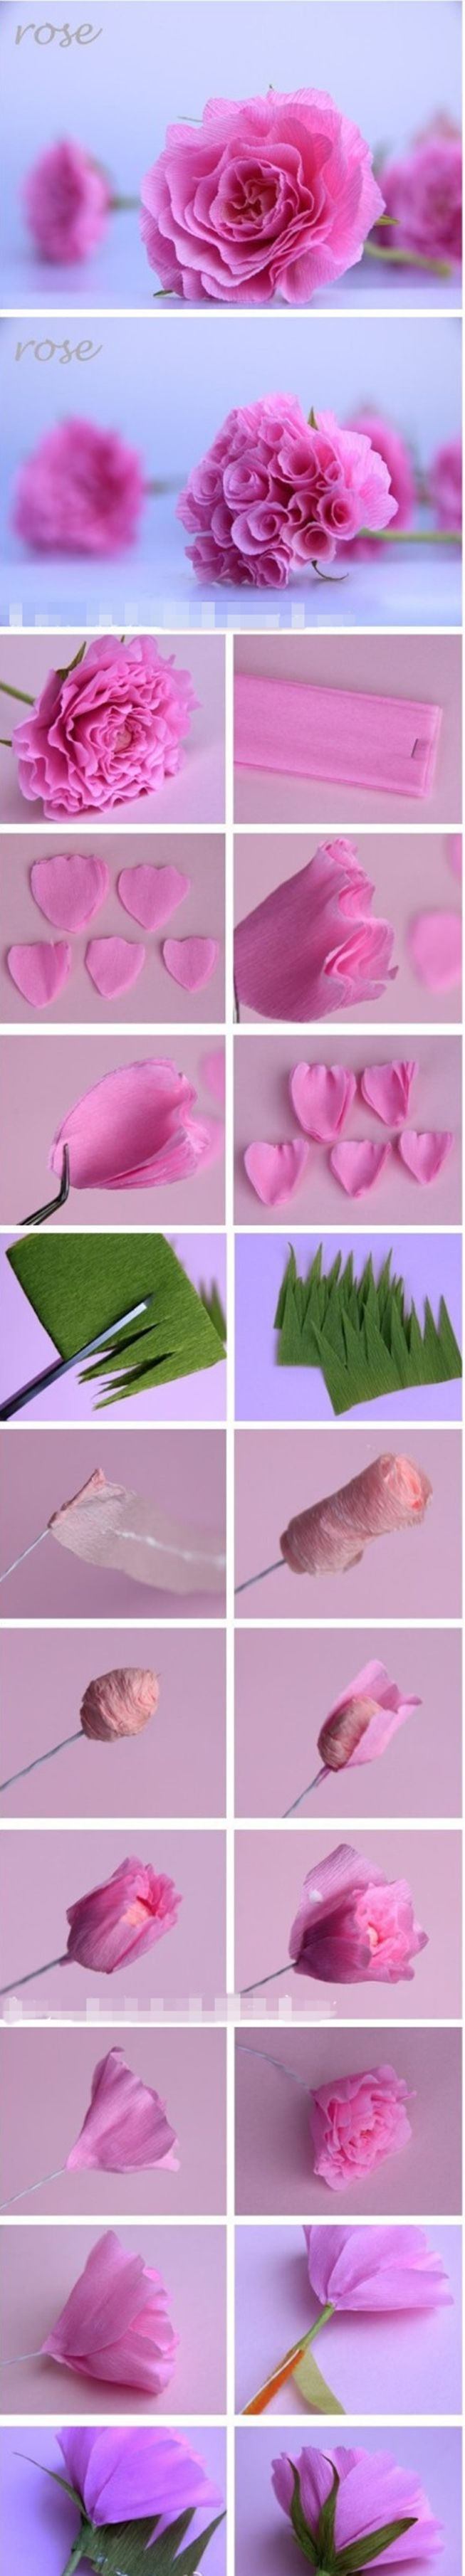 22 best origami images on pinterest diy origami oragami and how to make paper flowers using origami the art of paper folding fun paper diy on izmirmasajfo